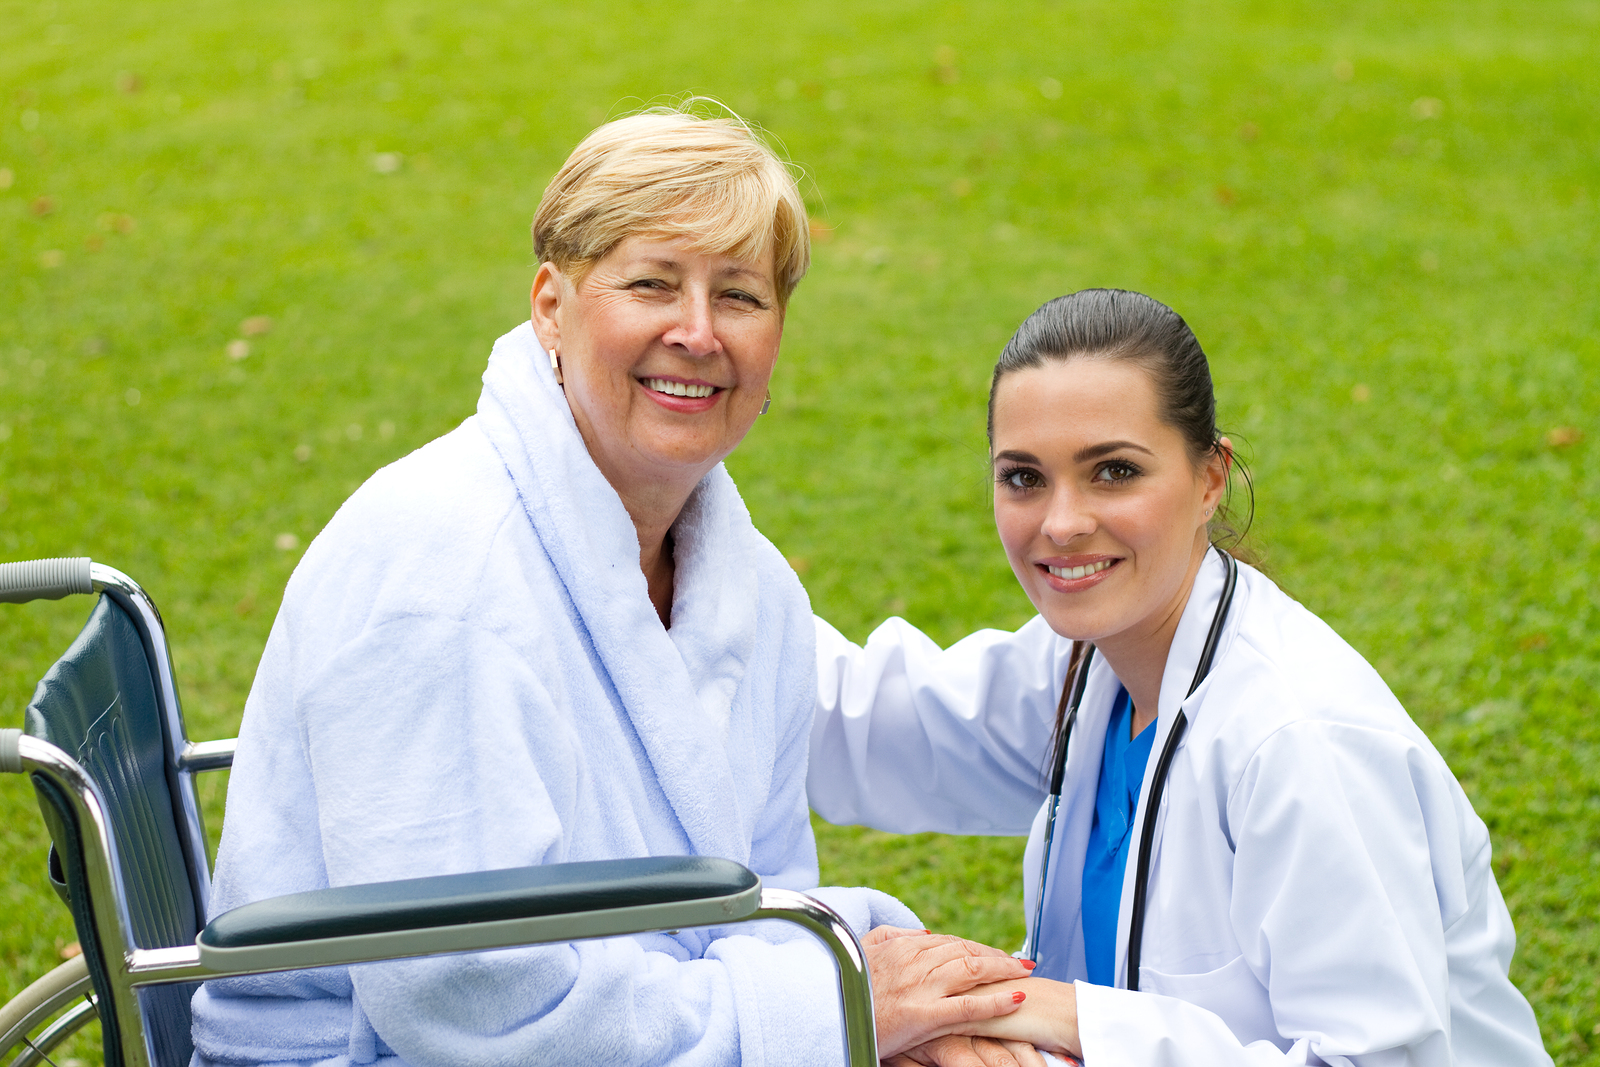 private nurse and happy patient in park